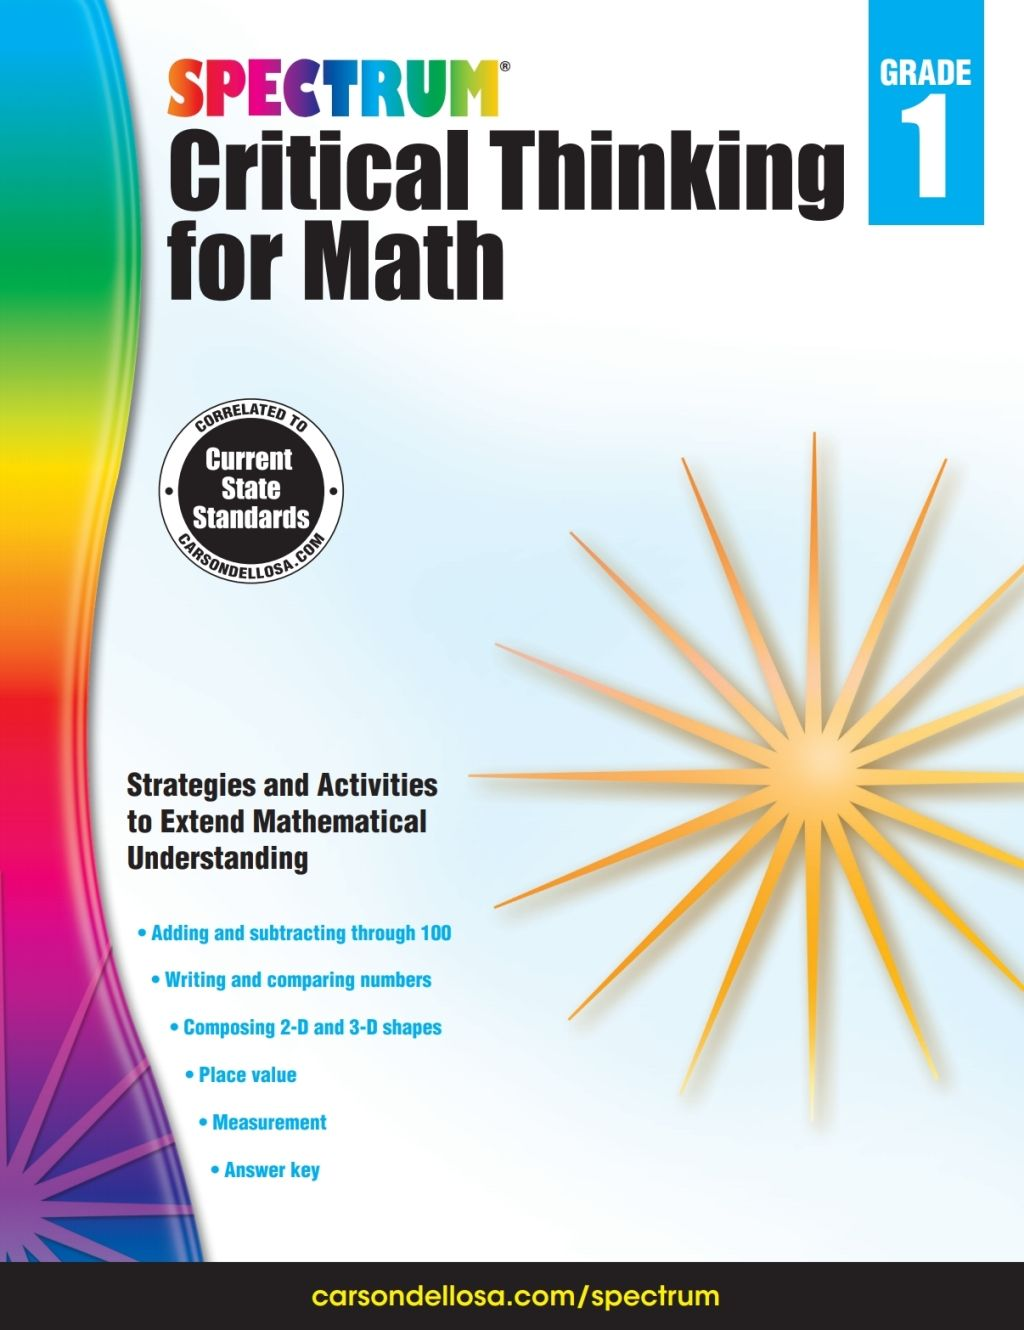 Spectrum Critical Thinking For Math Grade 1 Ebook In